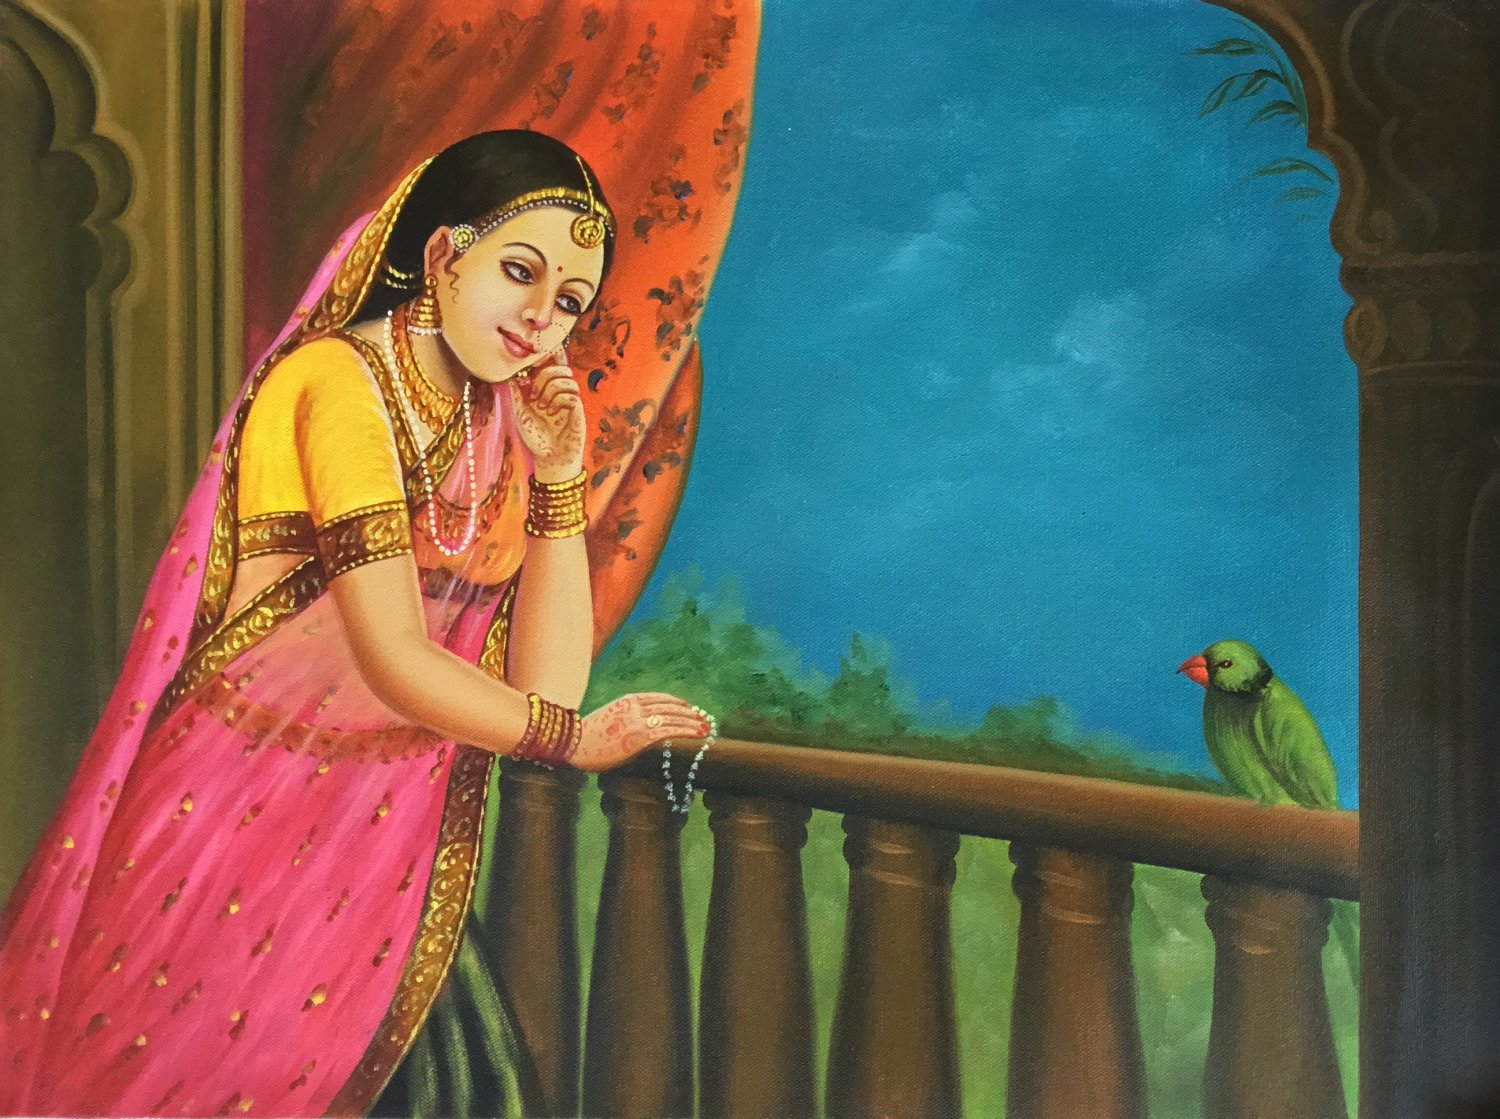 Rajasthan Lady Painting Handmade Indian Damsel Parrot Wall Decor Canvas Oil Art